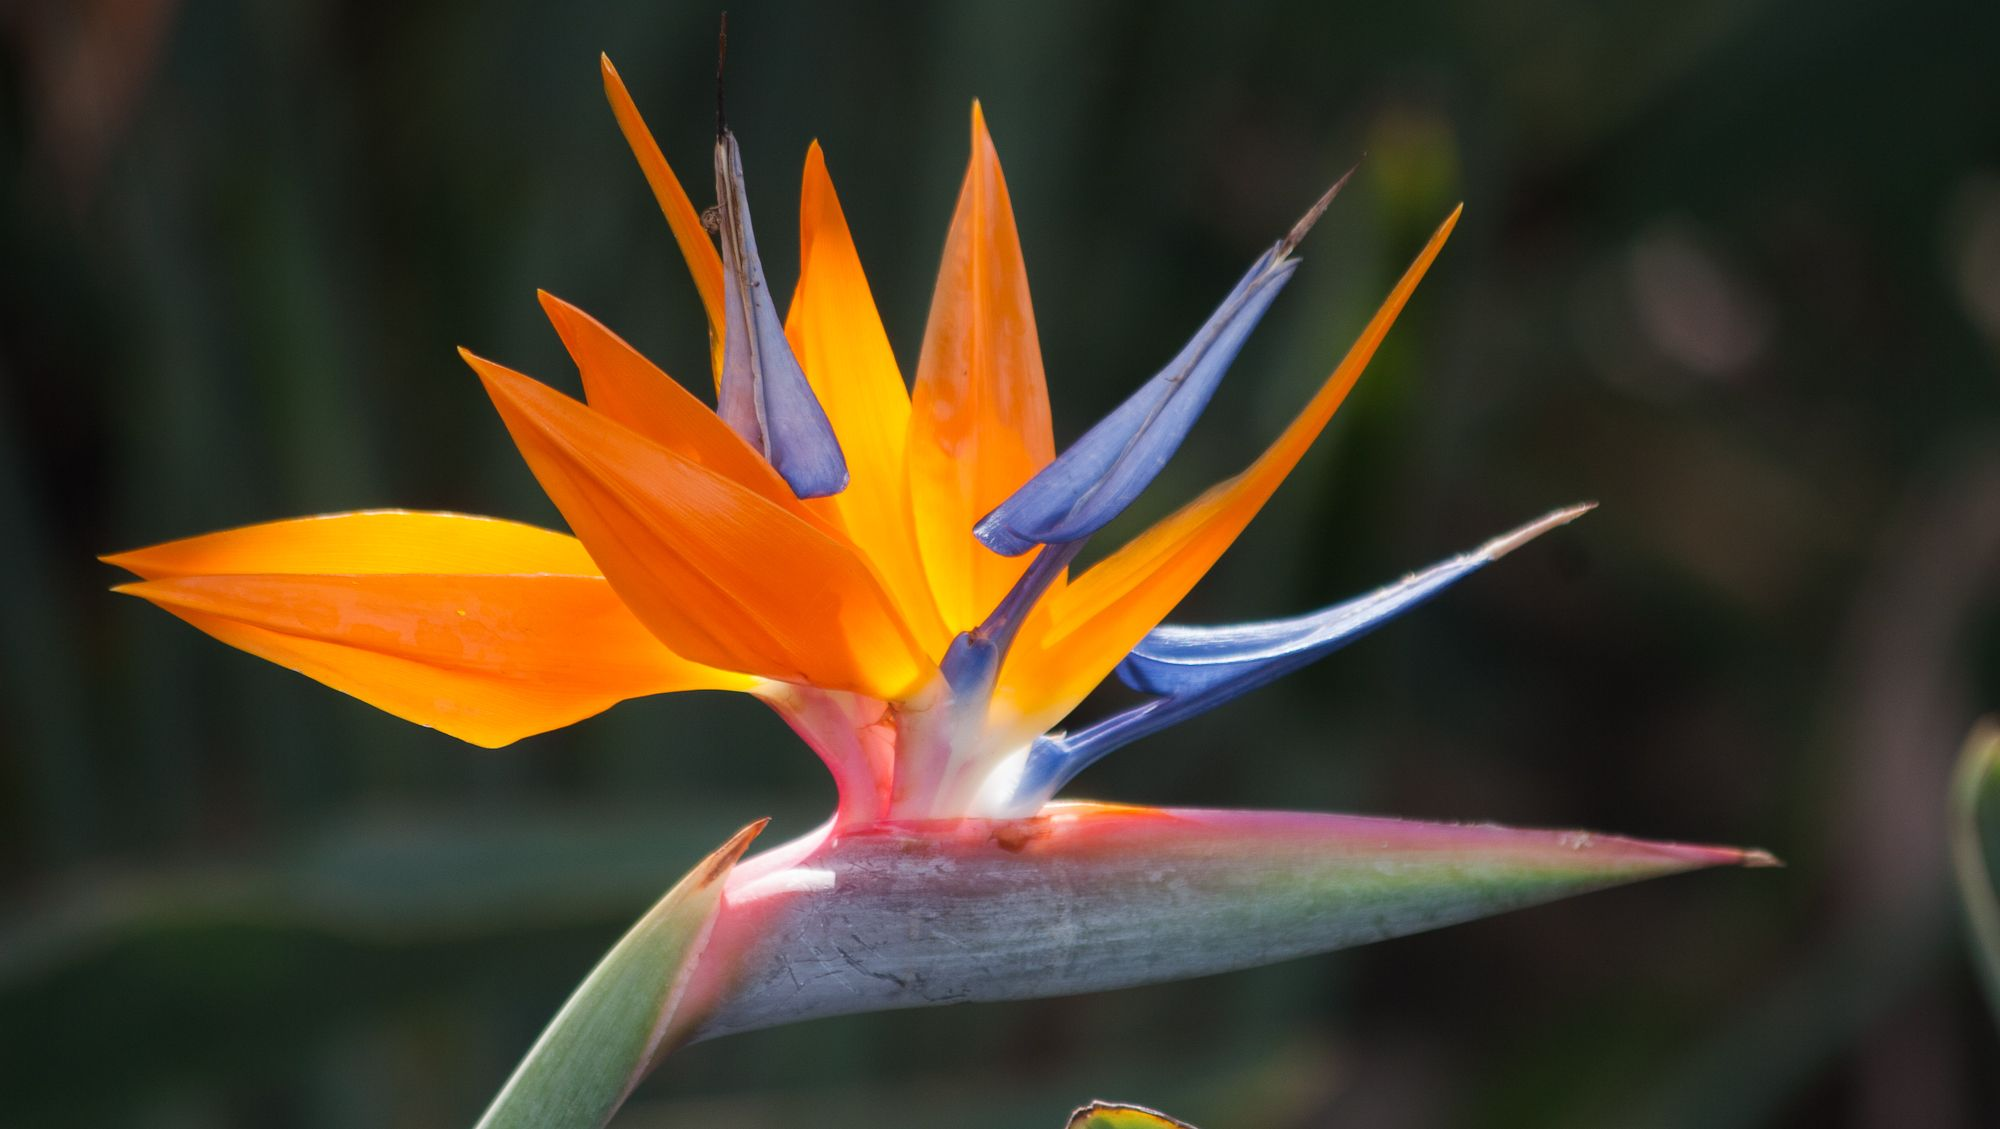 My Lovely Colleague Heather Suggested This Bird Of Paradise Flower Kolibrikukka In Finnish To Birds Of Paradise Plant Paradise Plant Birds Of Paradise Flower